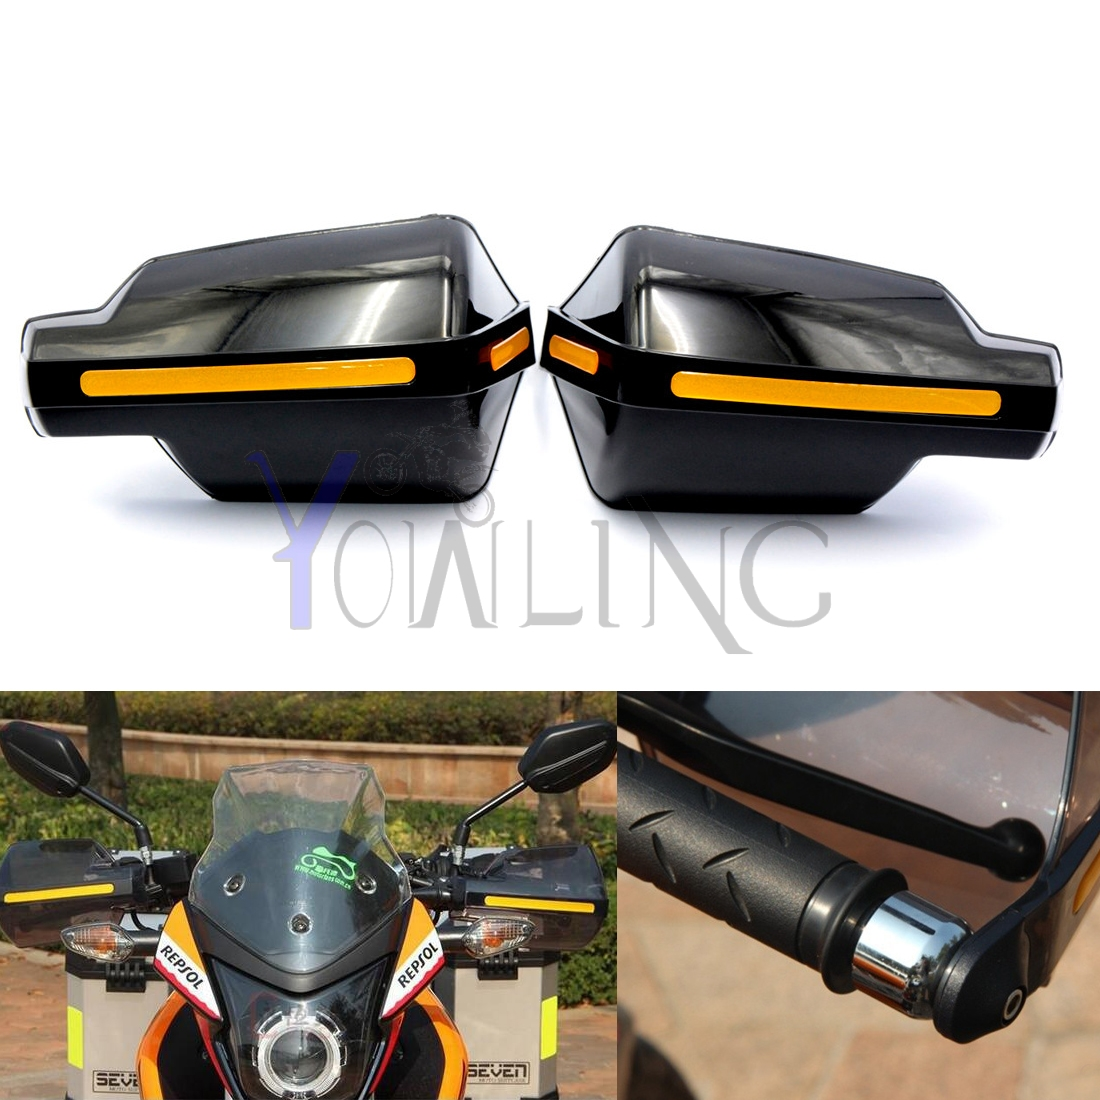 Motorcycle wind shield Brake lever hand guard For Yamaha T-Max 500 T-Max 530/ABS Tracer 900 ABS V-MAX with Hollow Handle bar black 900 500 2 2 mm aluminum riot shield alloy combined shield explosion shield